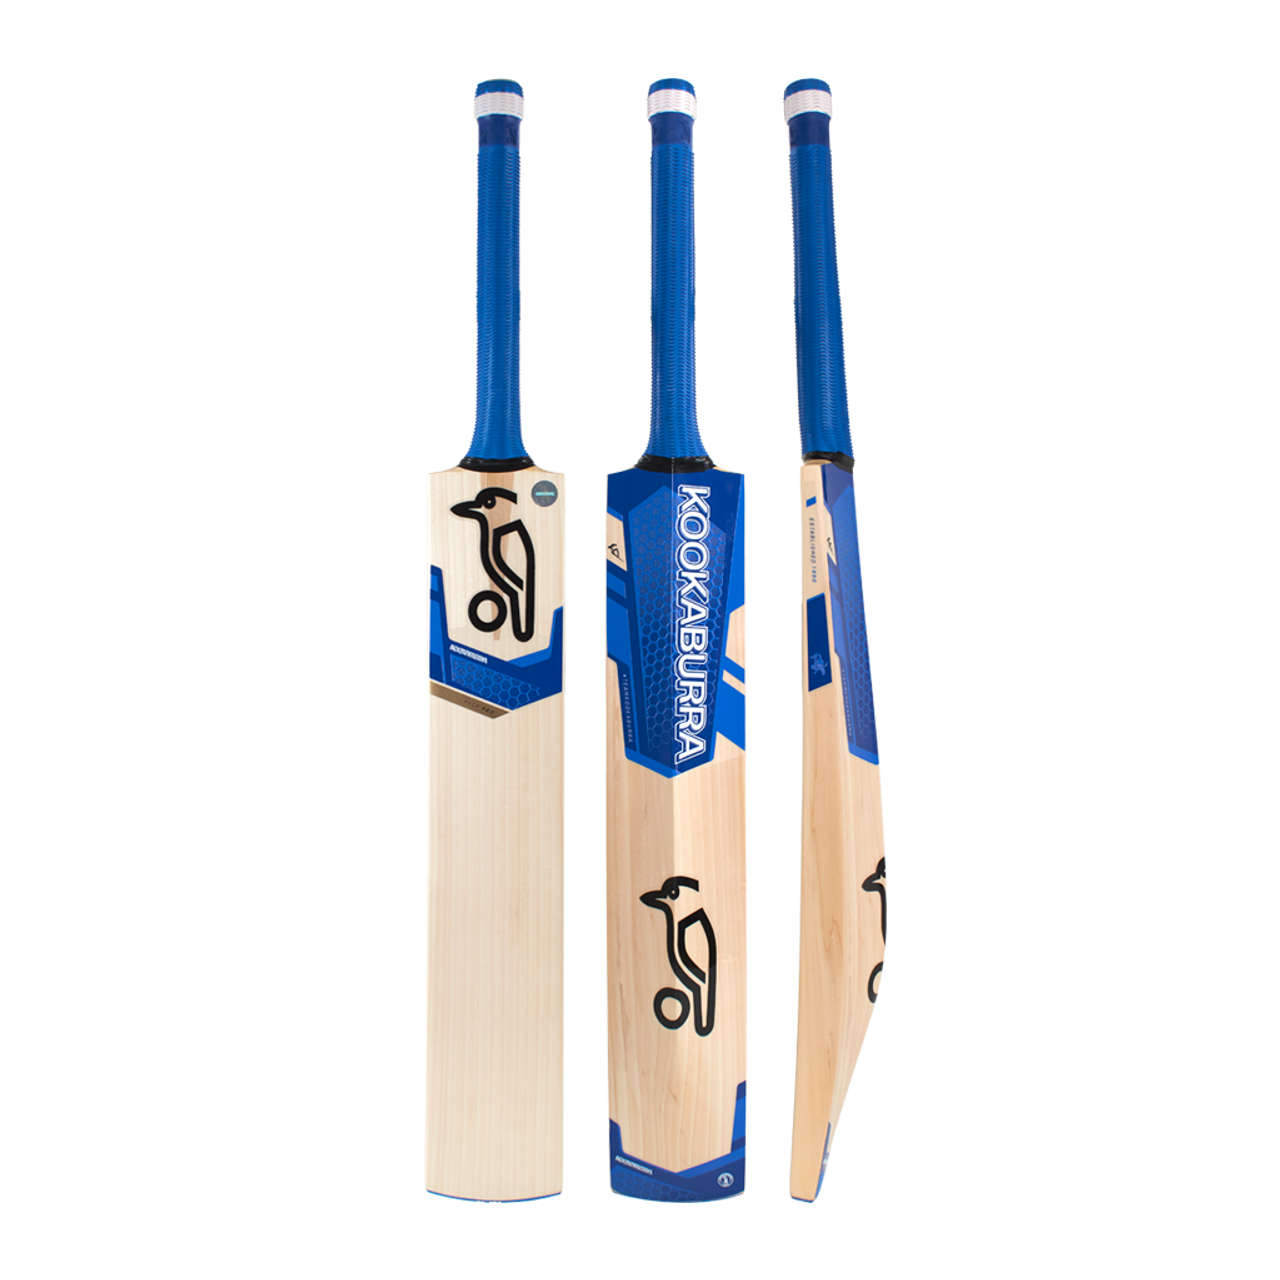 Kookaburra Pace Cricket Bat 2020